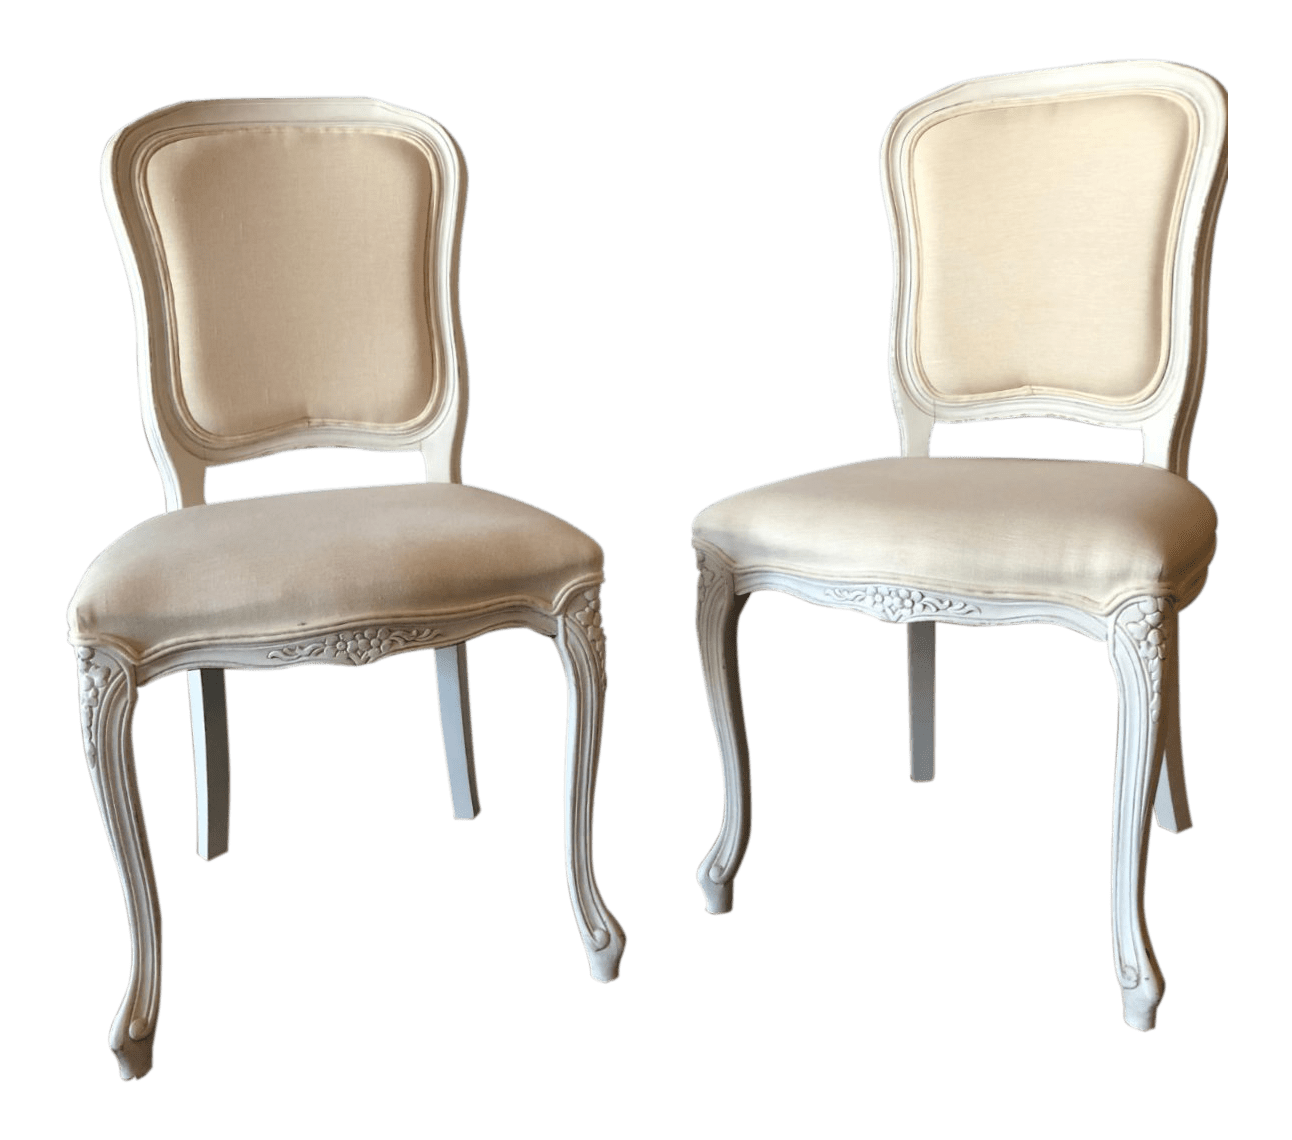 Vanity Chairs Italian Painted And Upholstered Vanity Chairs A Pair